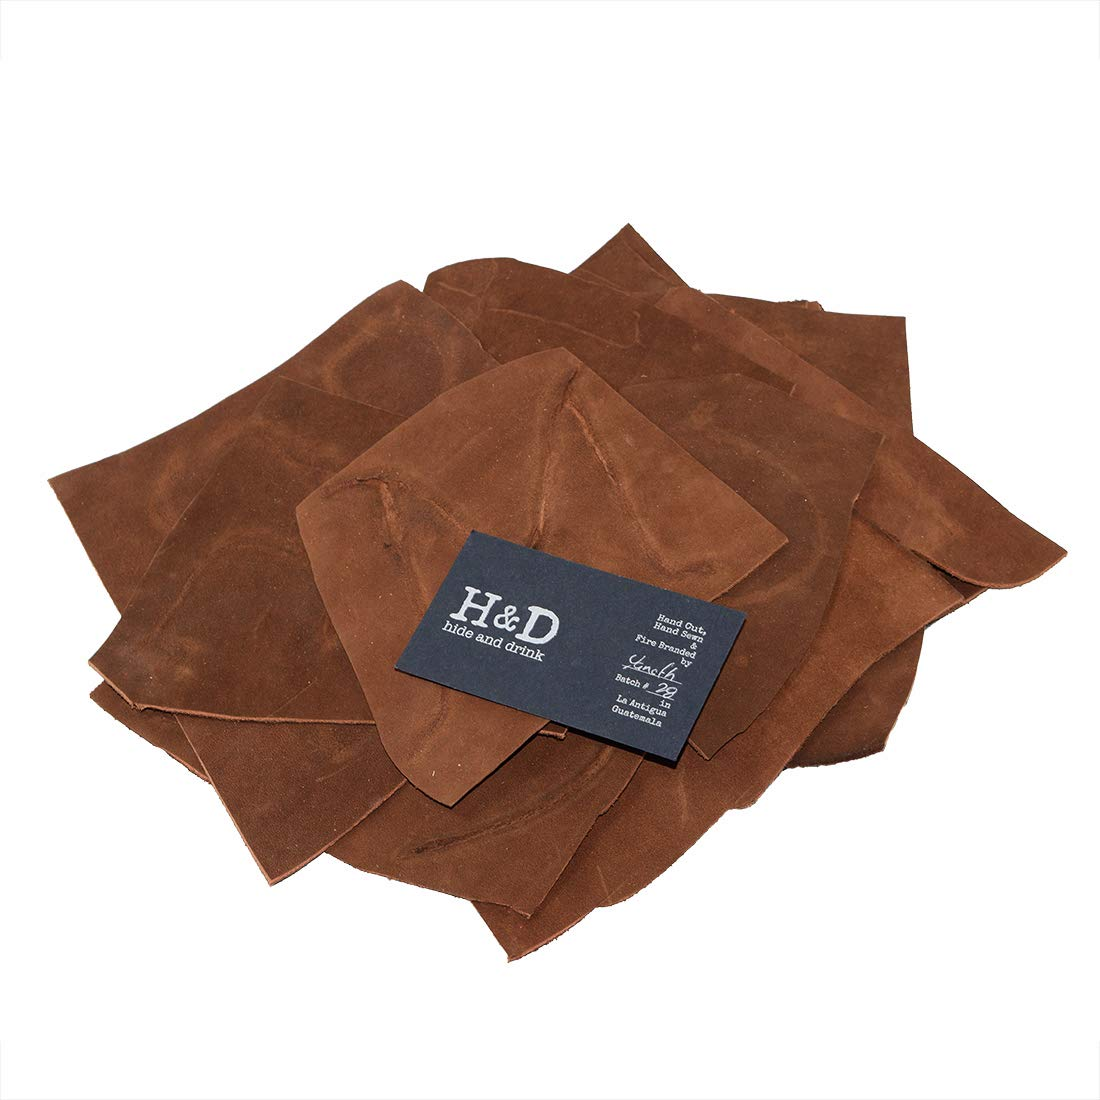 Leather Scraps with Scars for Arts /& Crafts, :: Swayze Suede 5 to 8 in. Long 12 oz Pack Hide /& Drink Different Widths